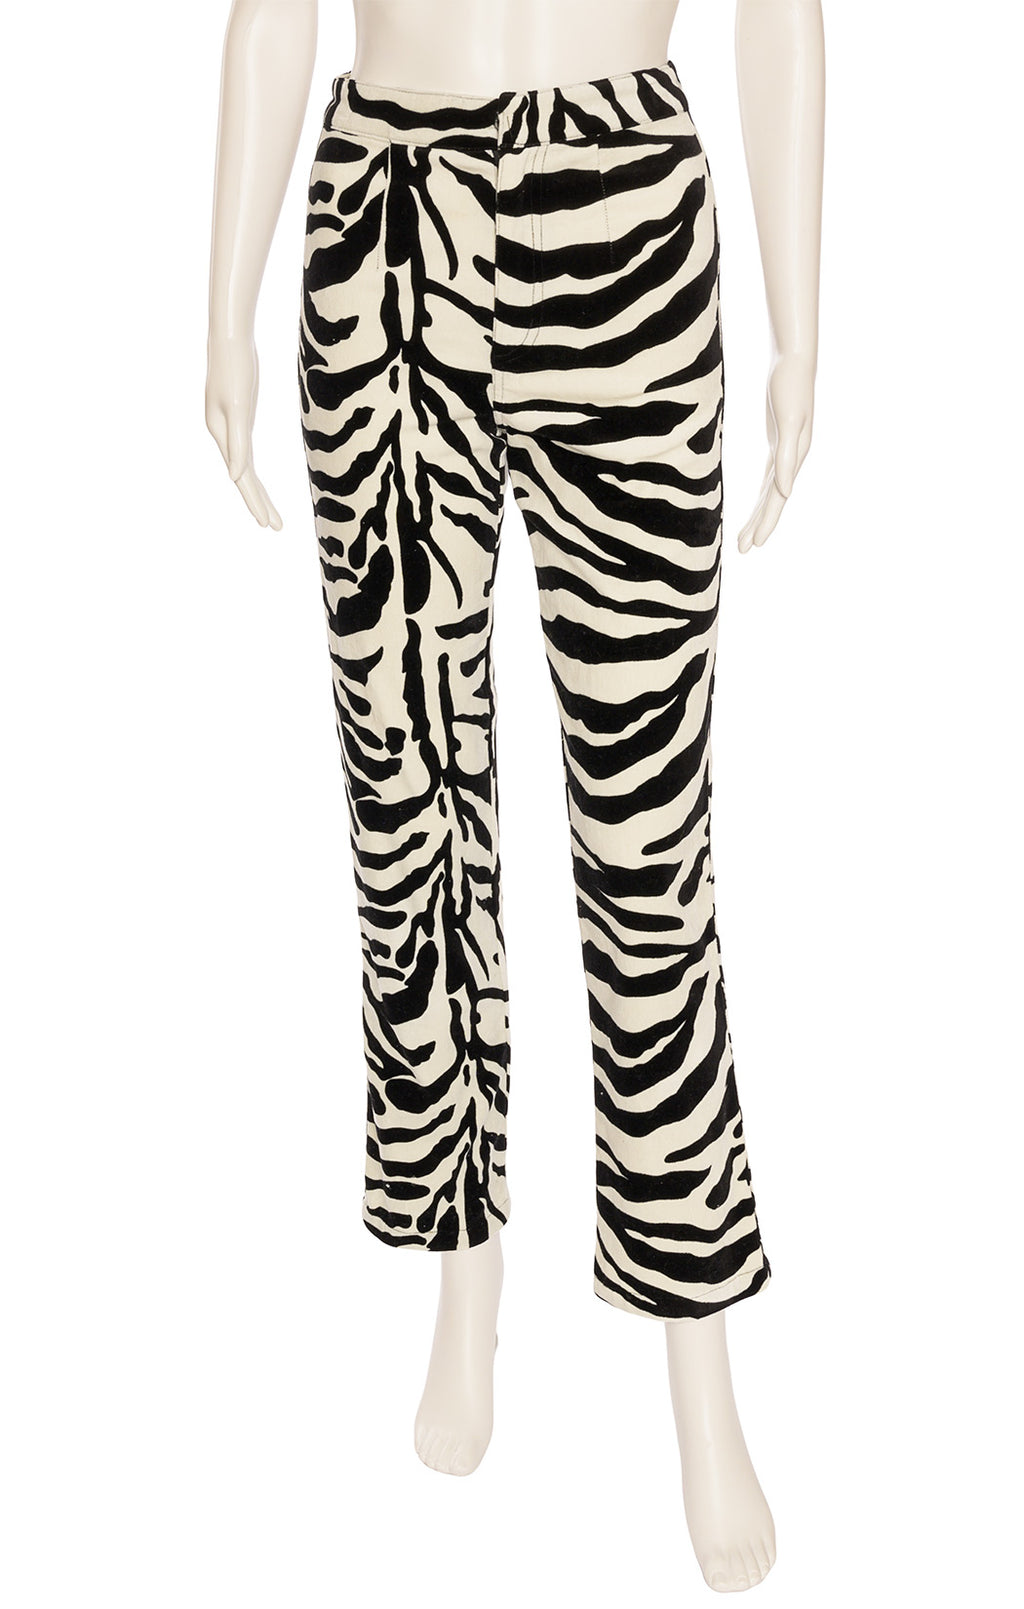 Black and white velvet like fabric print jean pant with front zipper and back pockets